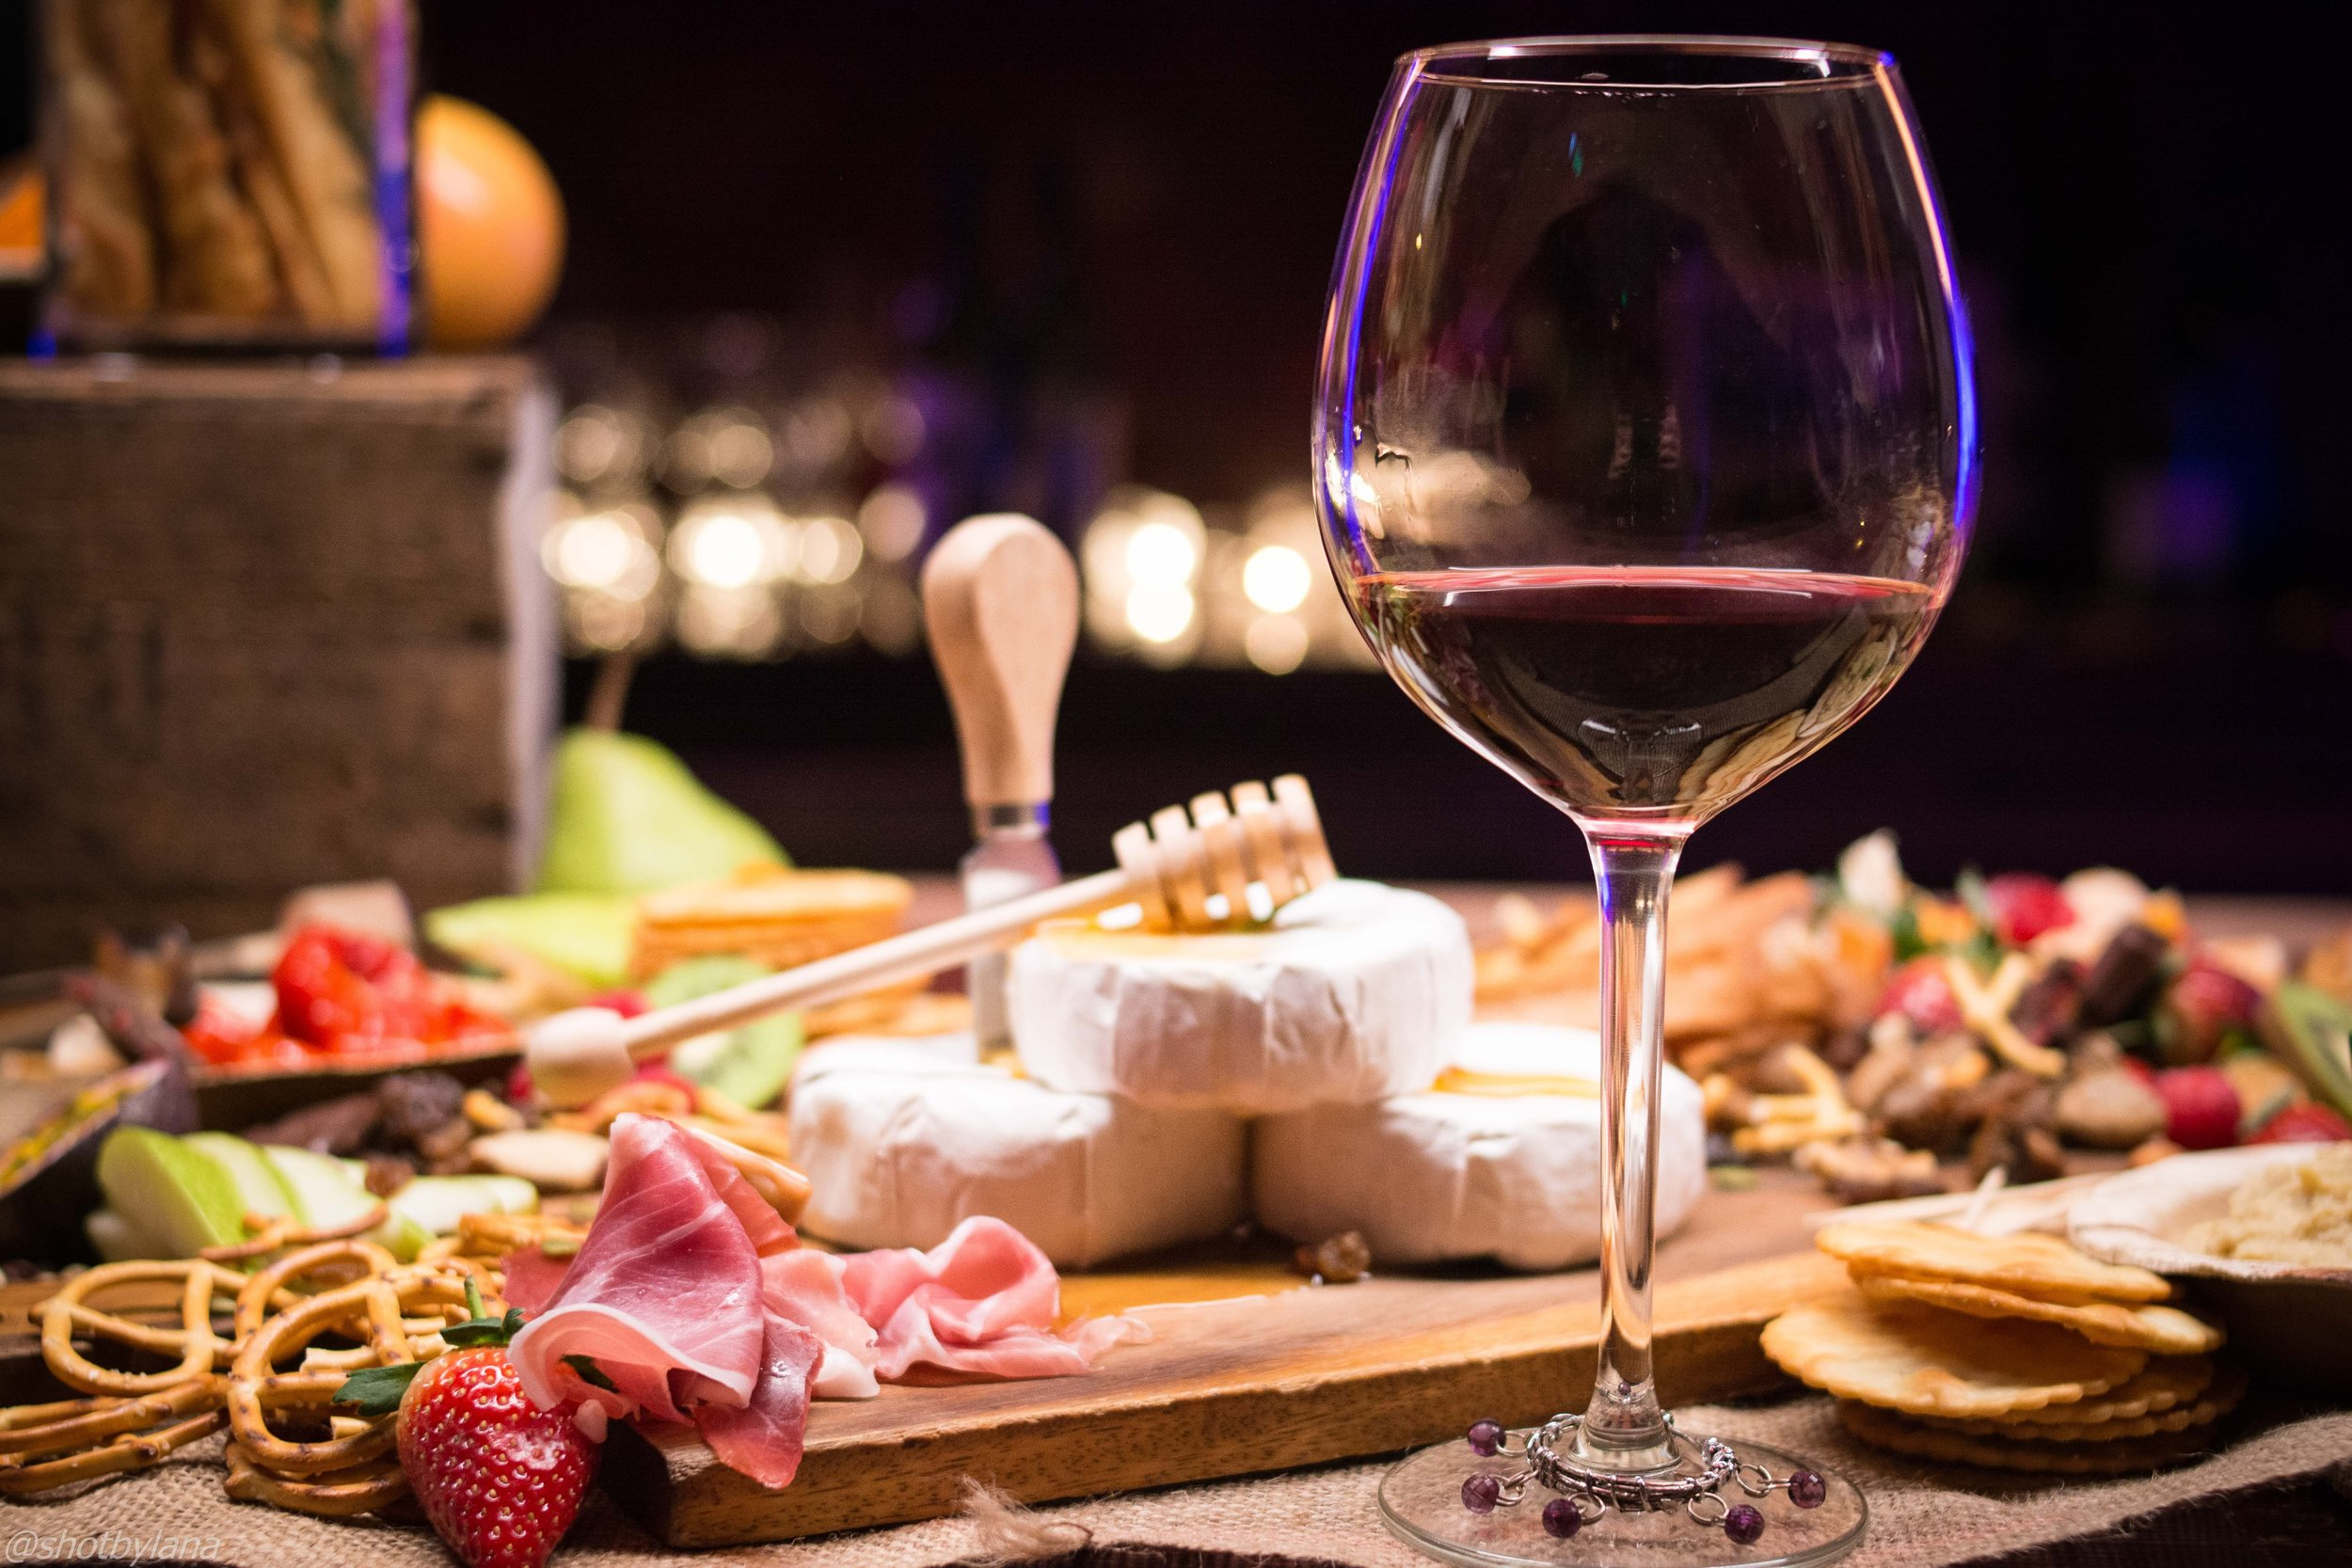 Food & Beverage - Consultation on your food and beverage needs for your next event. We specialize in consulting for large corporate events and retreats.